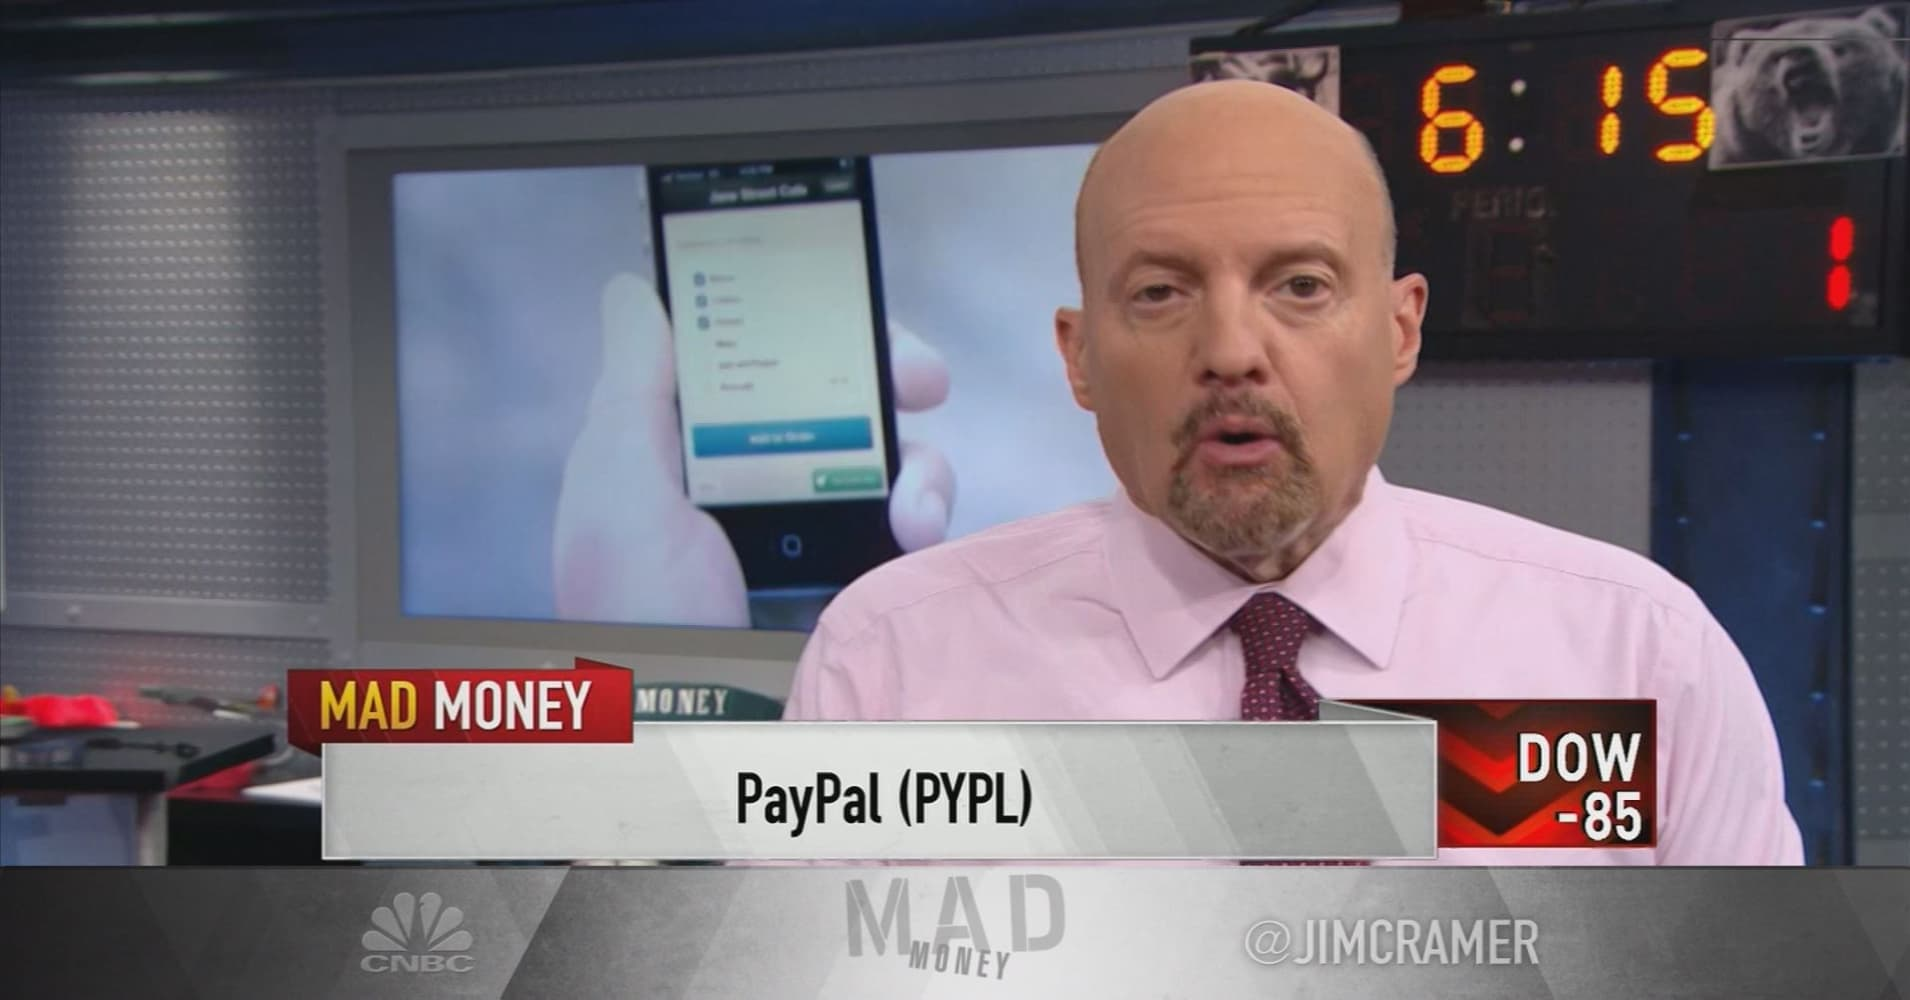 Cramer: Bitcoin and PayPal are putting pressure on bank stocks